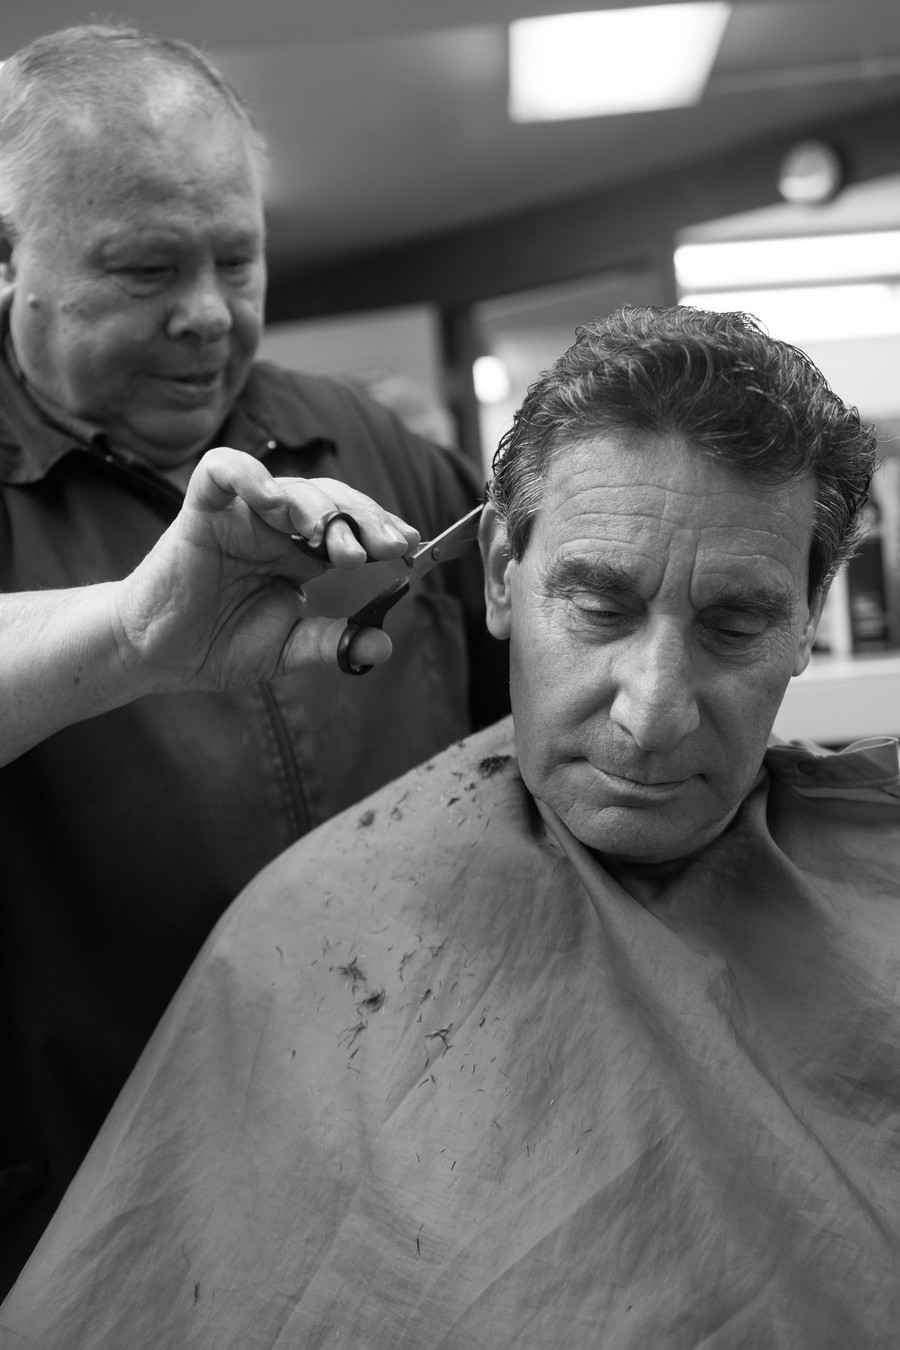 Barbershop In Reynolds Club Closes After Over 100 Years Of Service